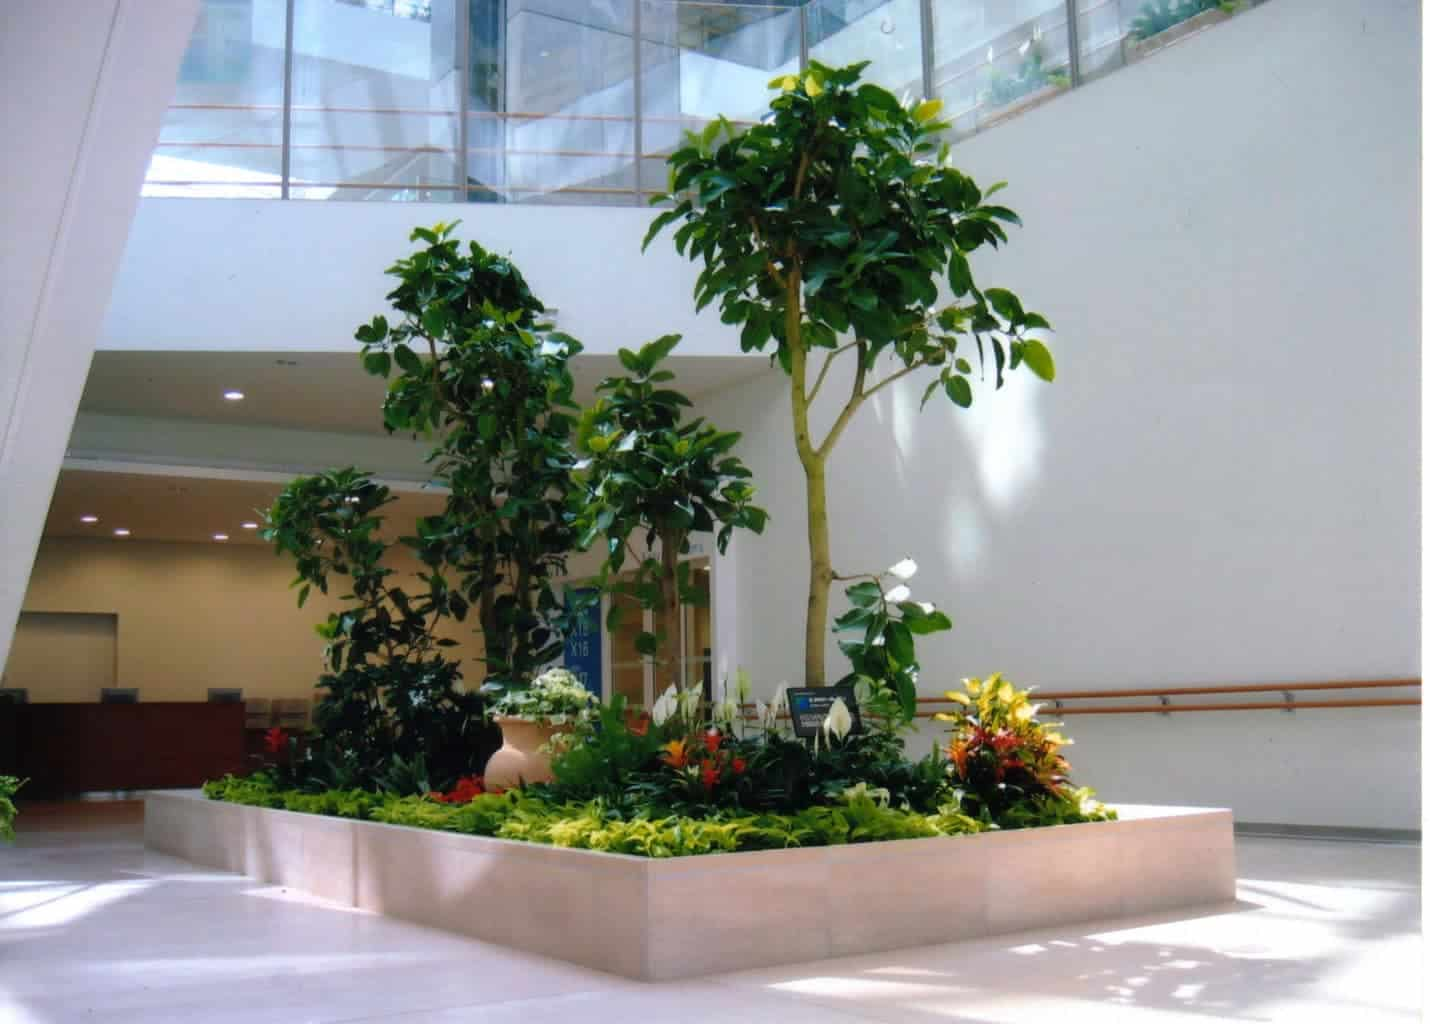 Portfolio of interior plants and indoor landscapes in nh for Manapat interior landscape designs